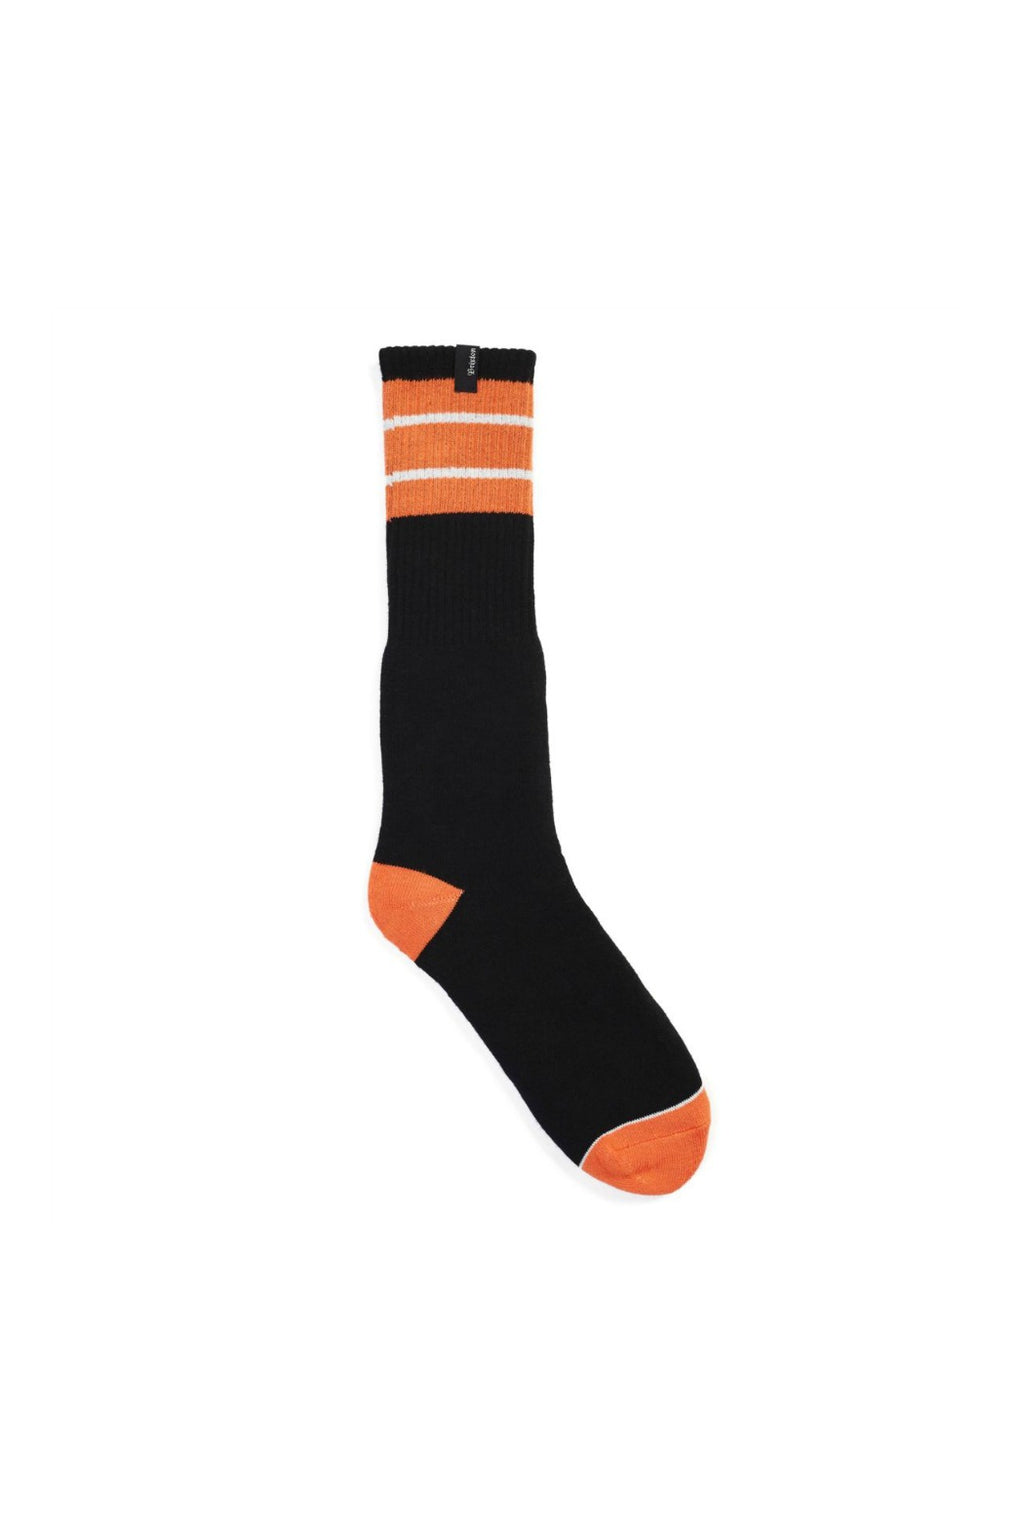 Brixton Alameda Socks in Orange and Black